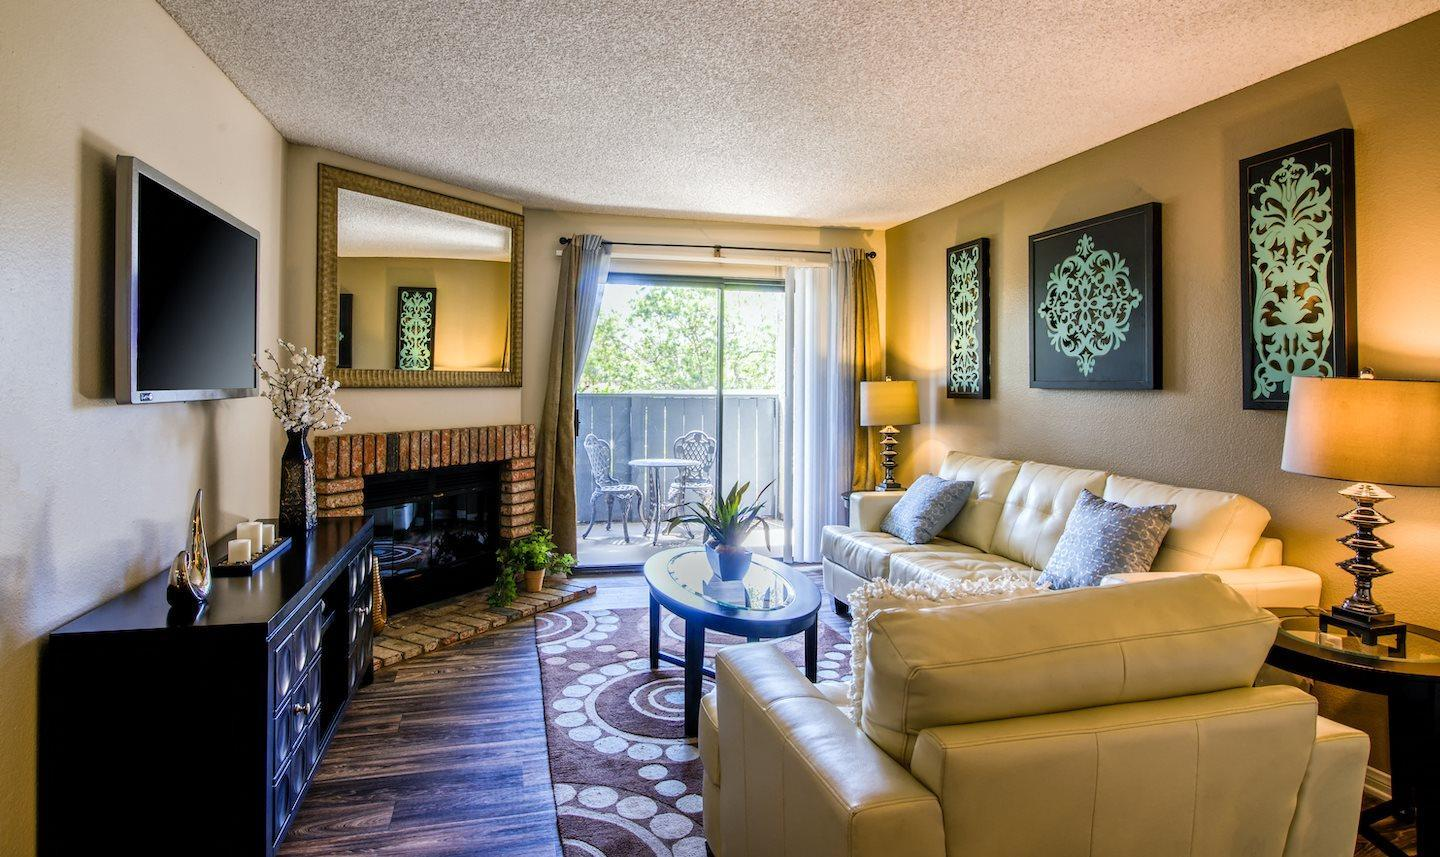 3402 Calle Odessa #A102, Carlsbad, CA - $2,051 USD/ month